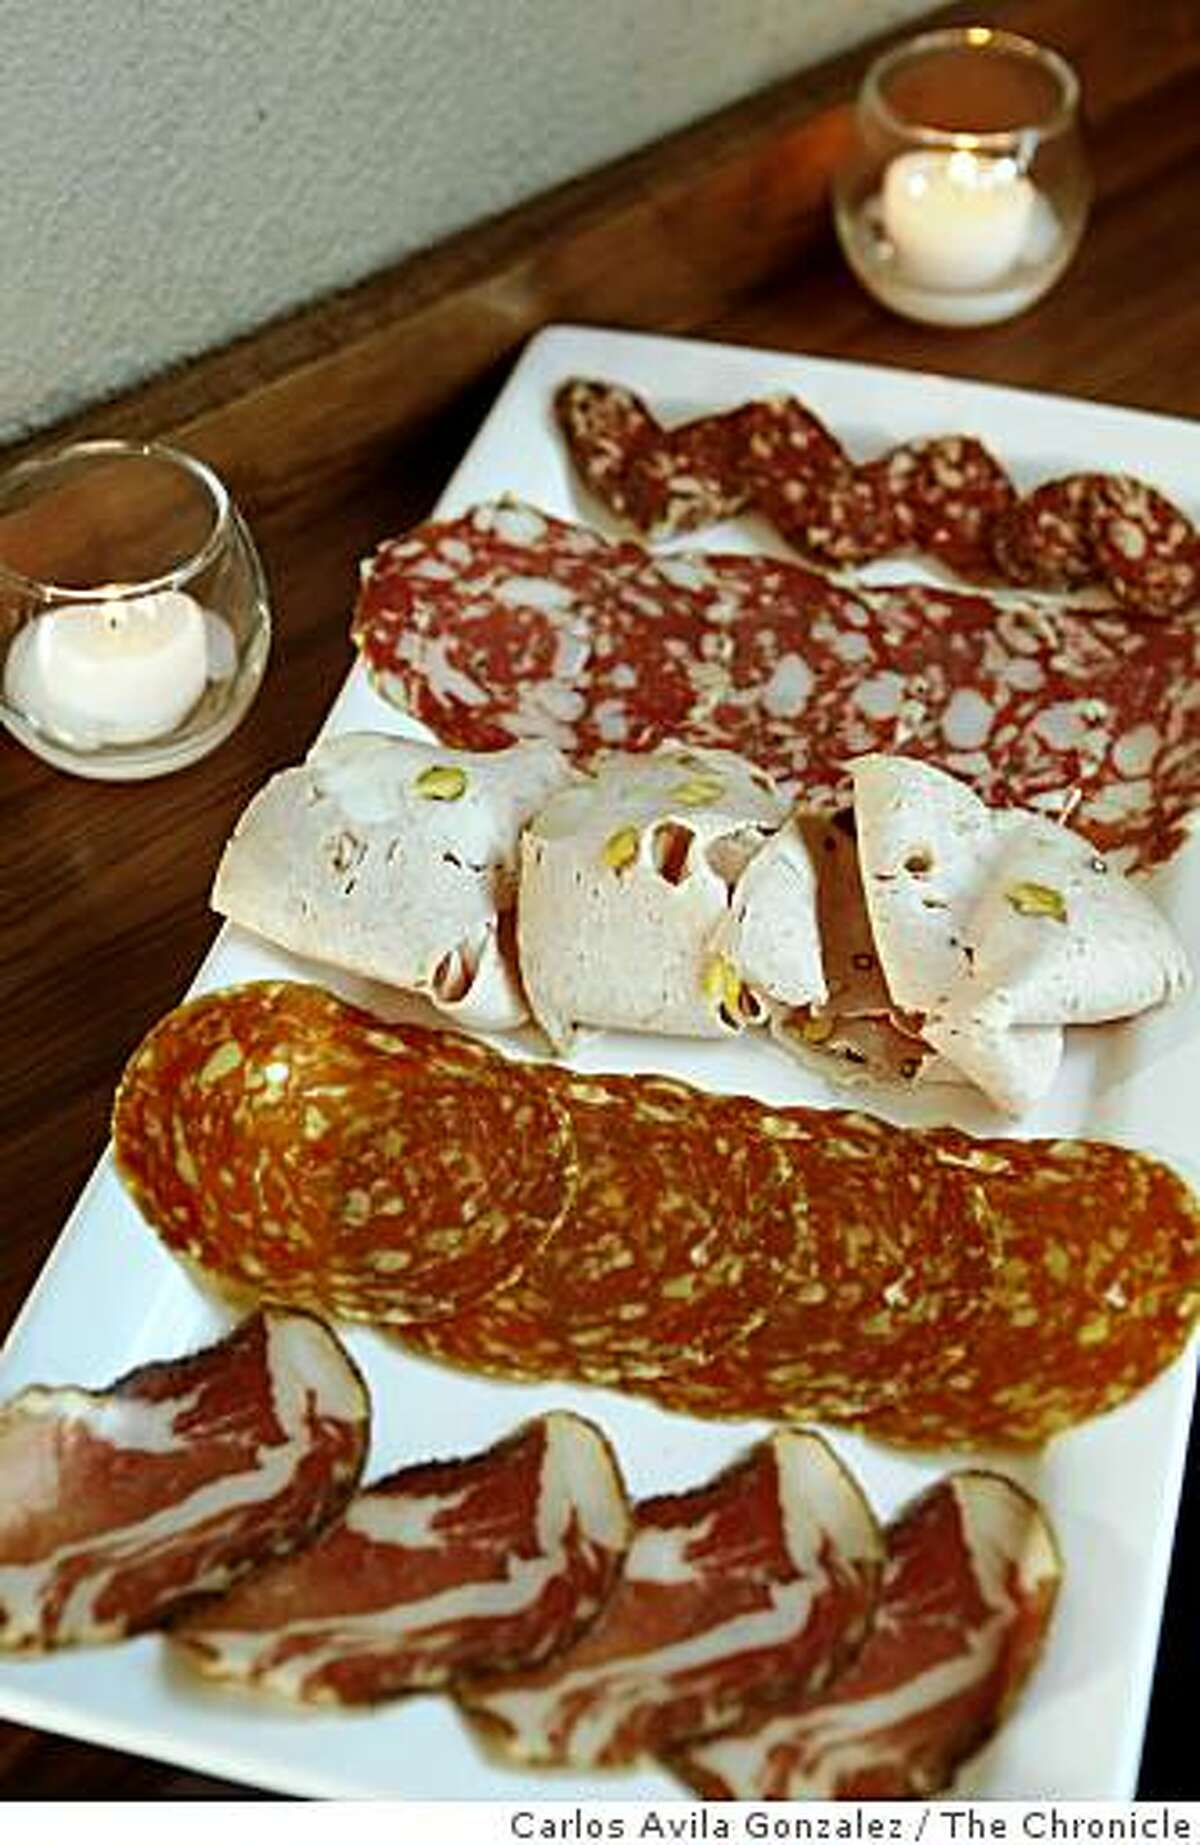 Chef's salumi platter, served at Adesso. Adesso is a new restaurant in Oakland that does exceptional salumi and pates.